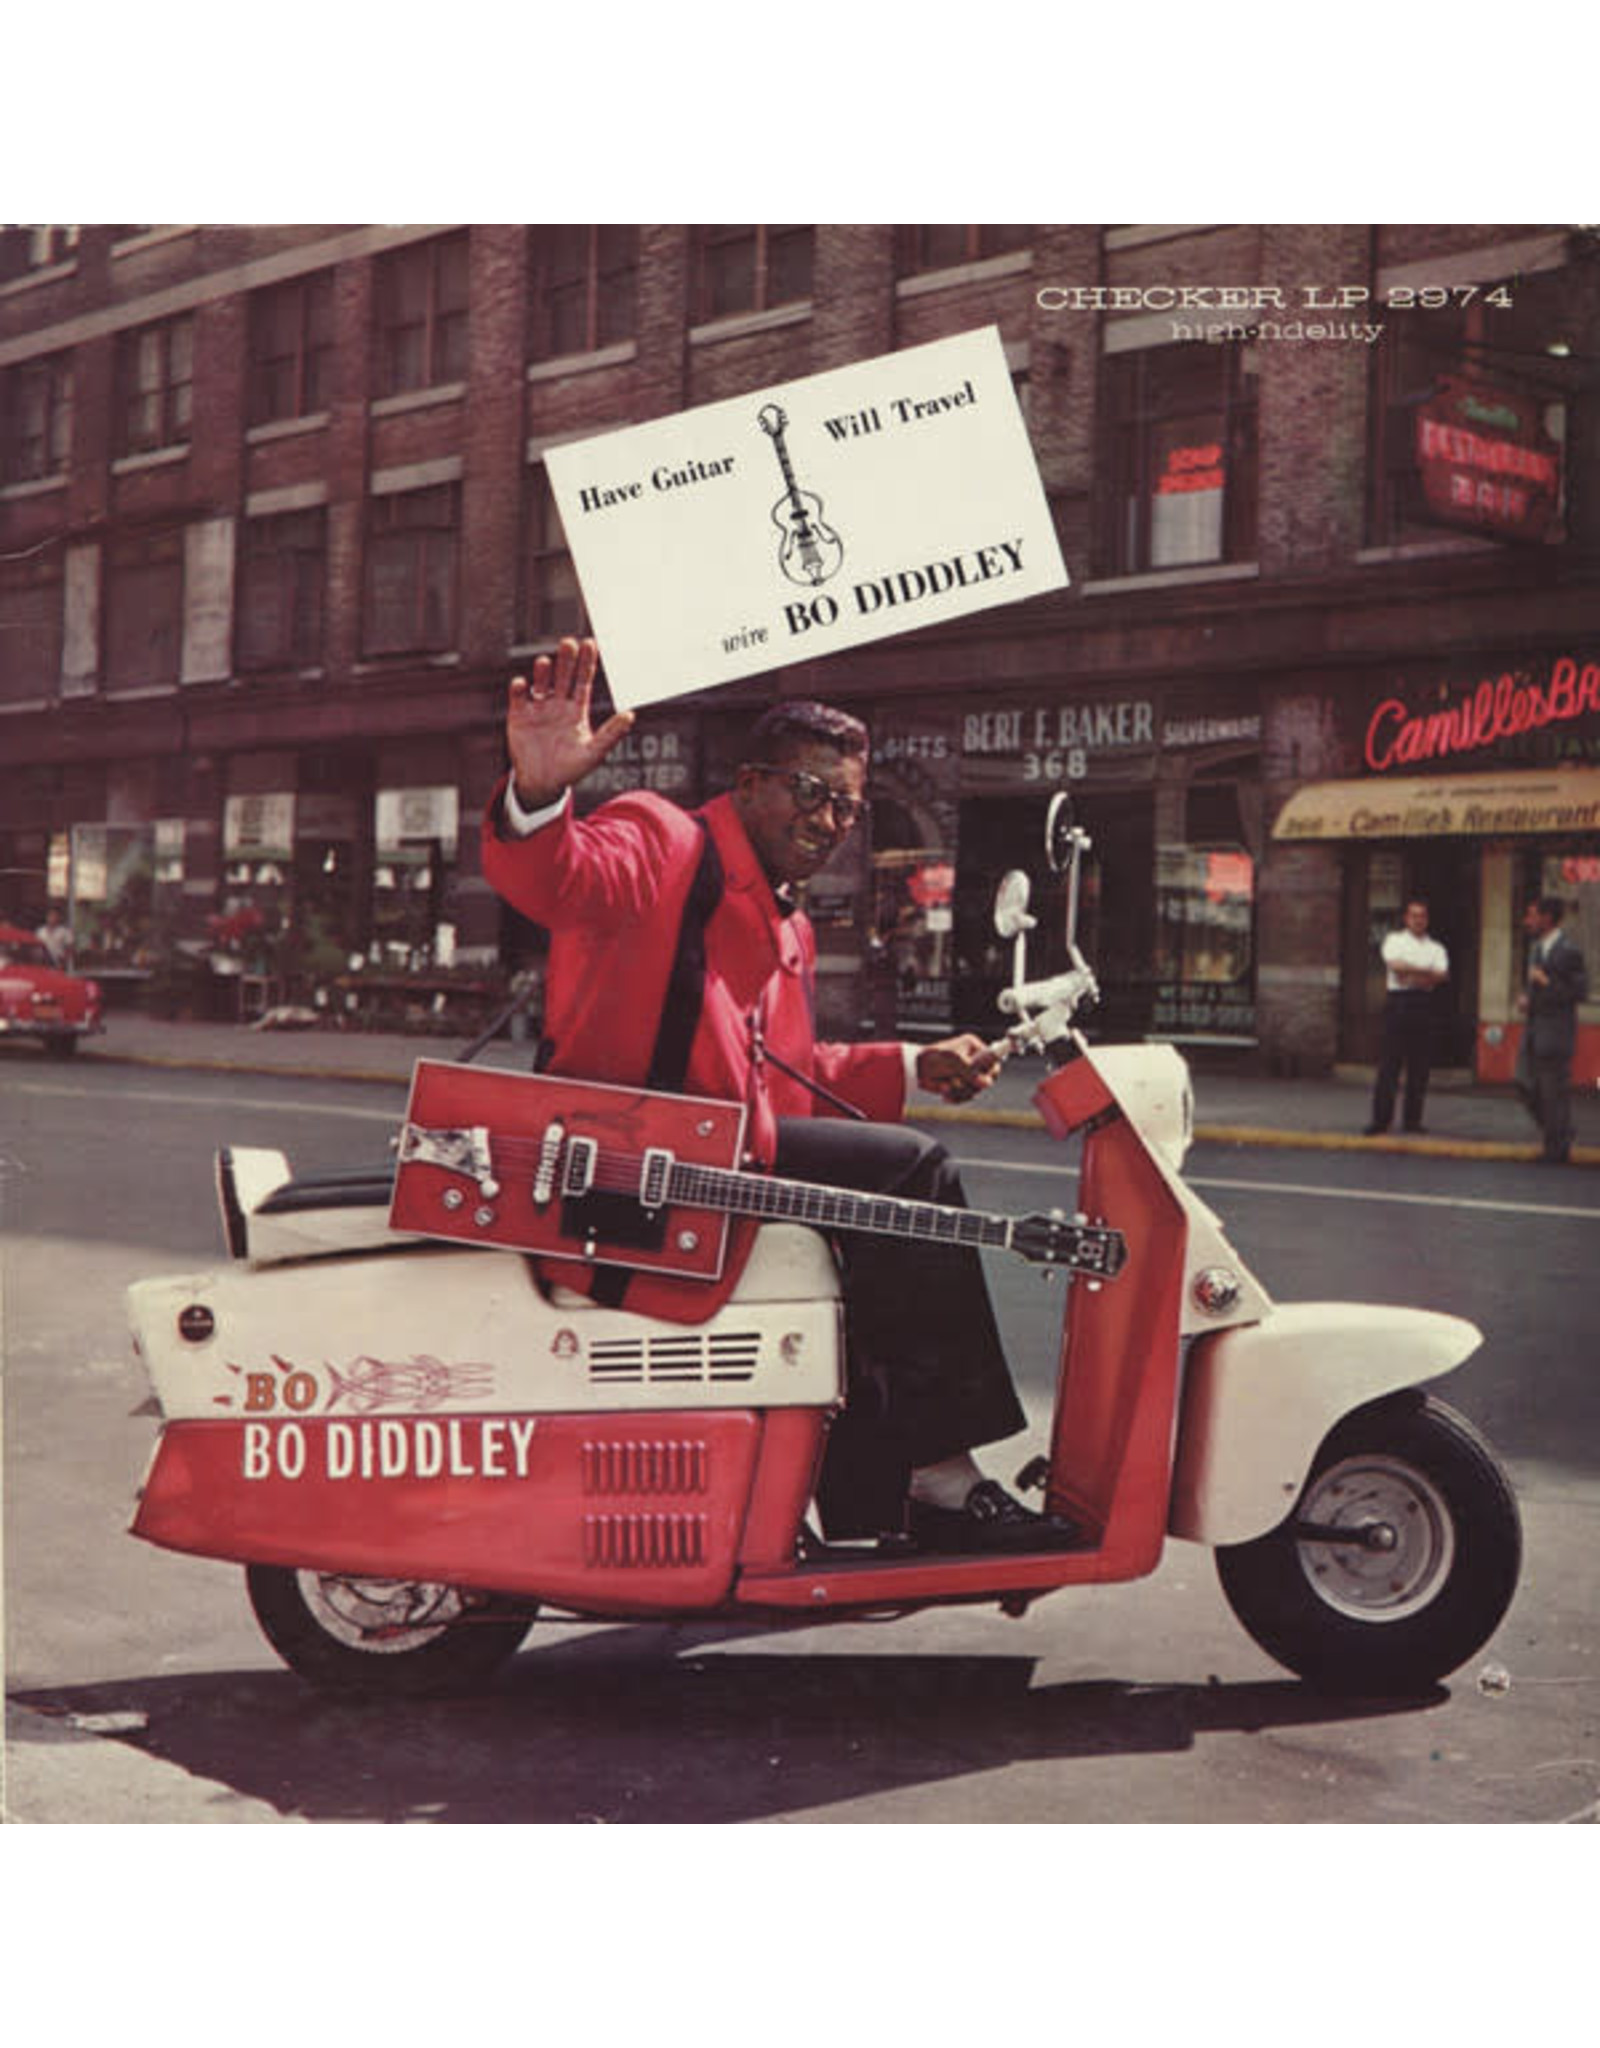 Diddley, Bo - Have Guitar, Will Travel LP